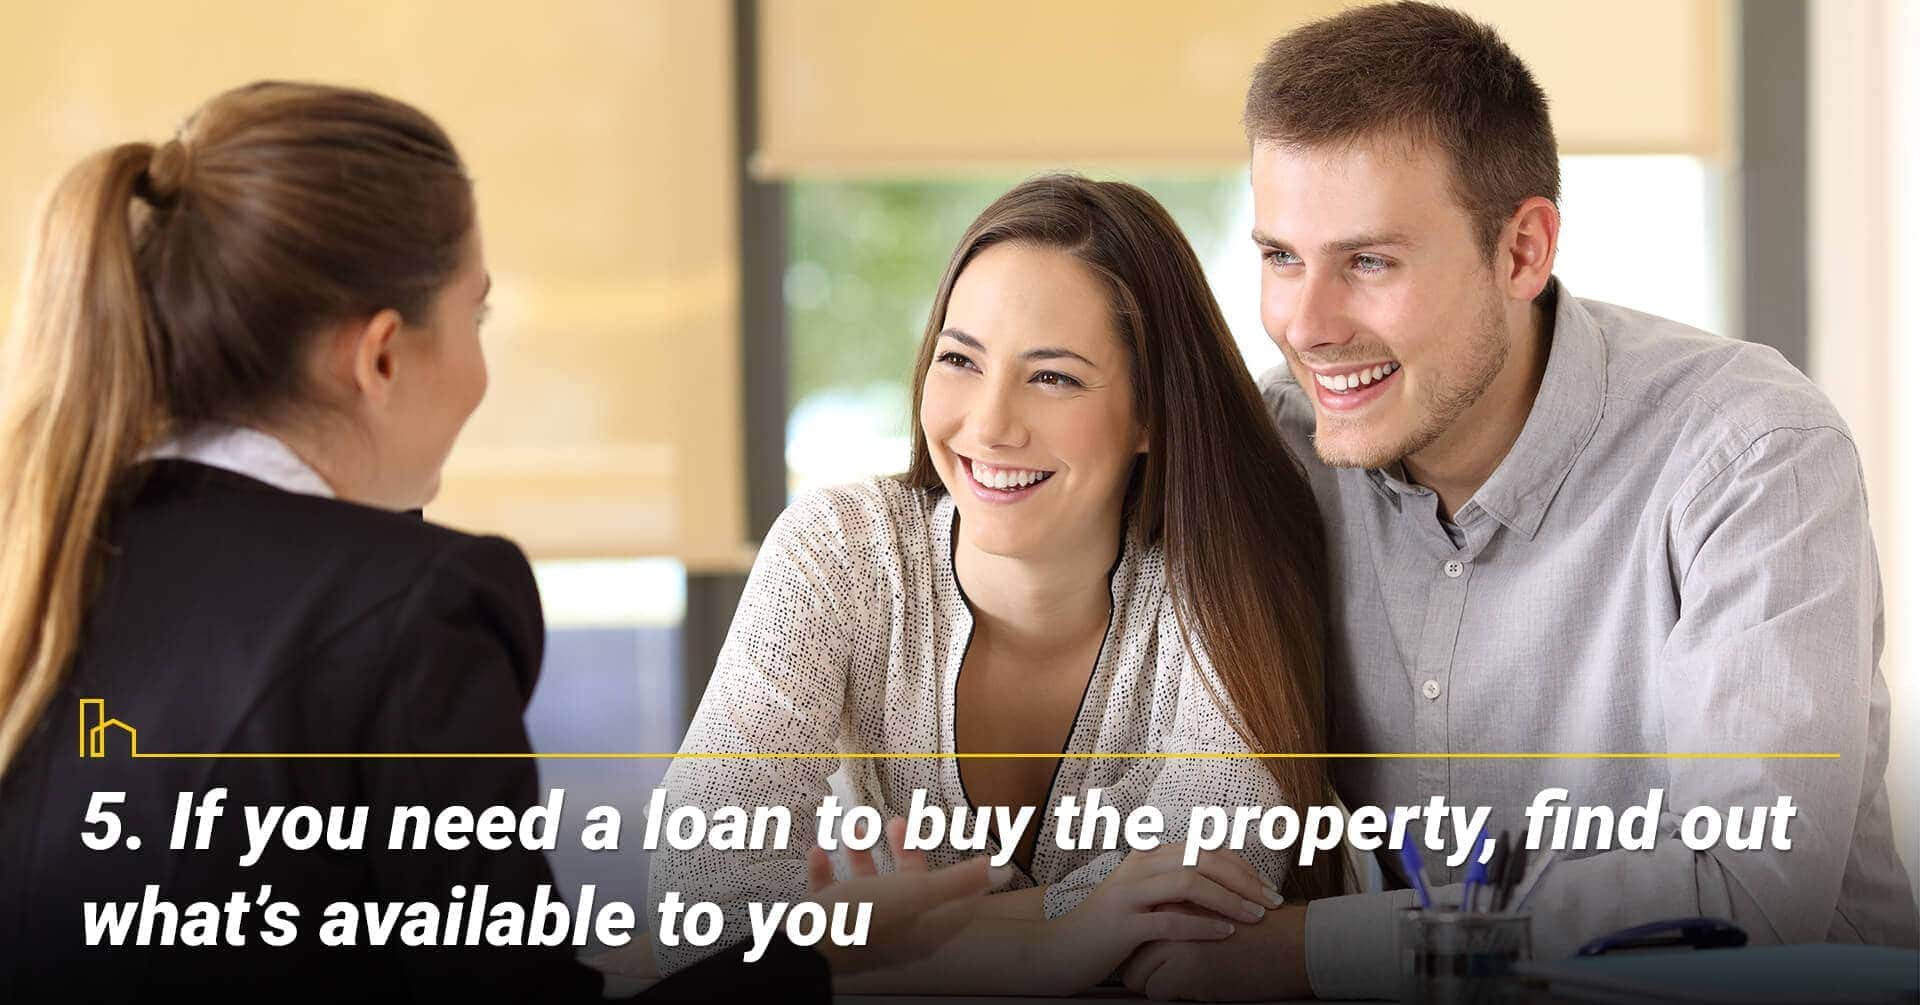 If you need a loan to buy the property, find out what's available to you, work with a mortgage consultant